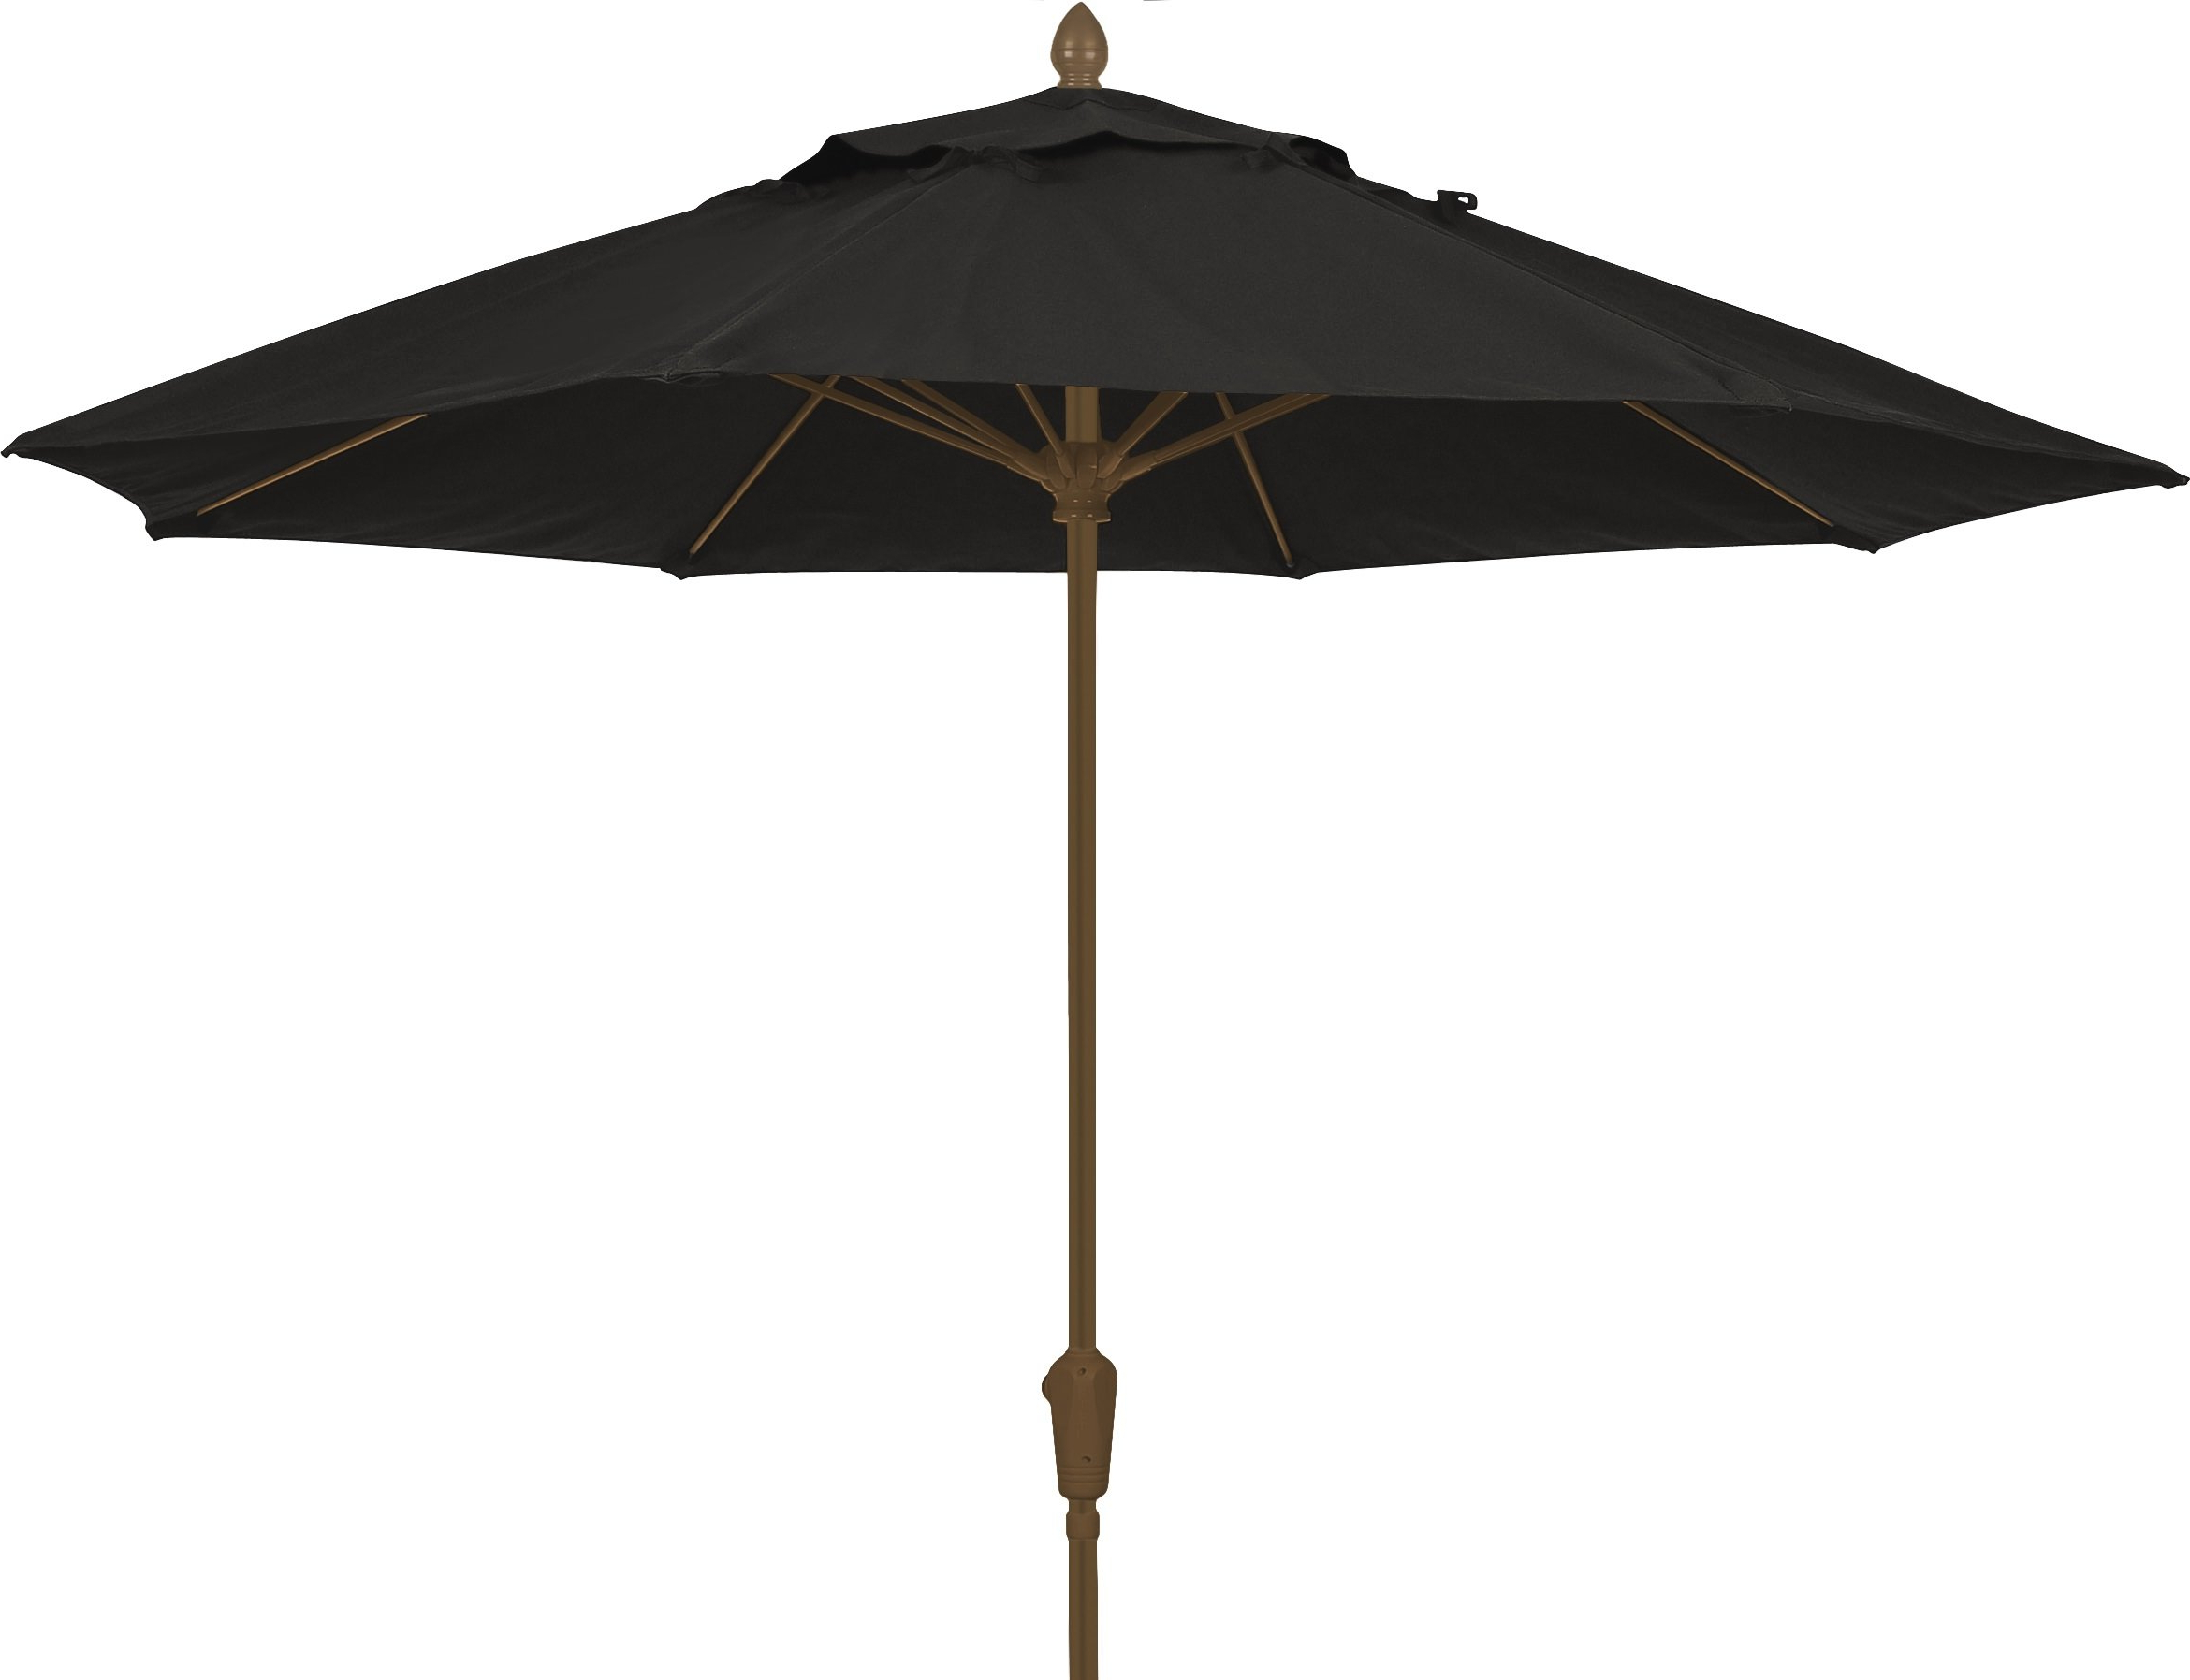 Most Up To Date Wiebe Market Sunbrella Umbrellas Inside Prestige 9' Market Sunbrella Umbrella (Gallery 18 of 20)